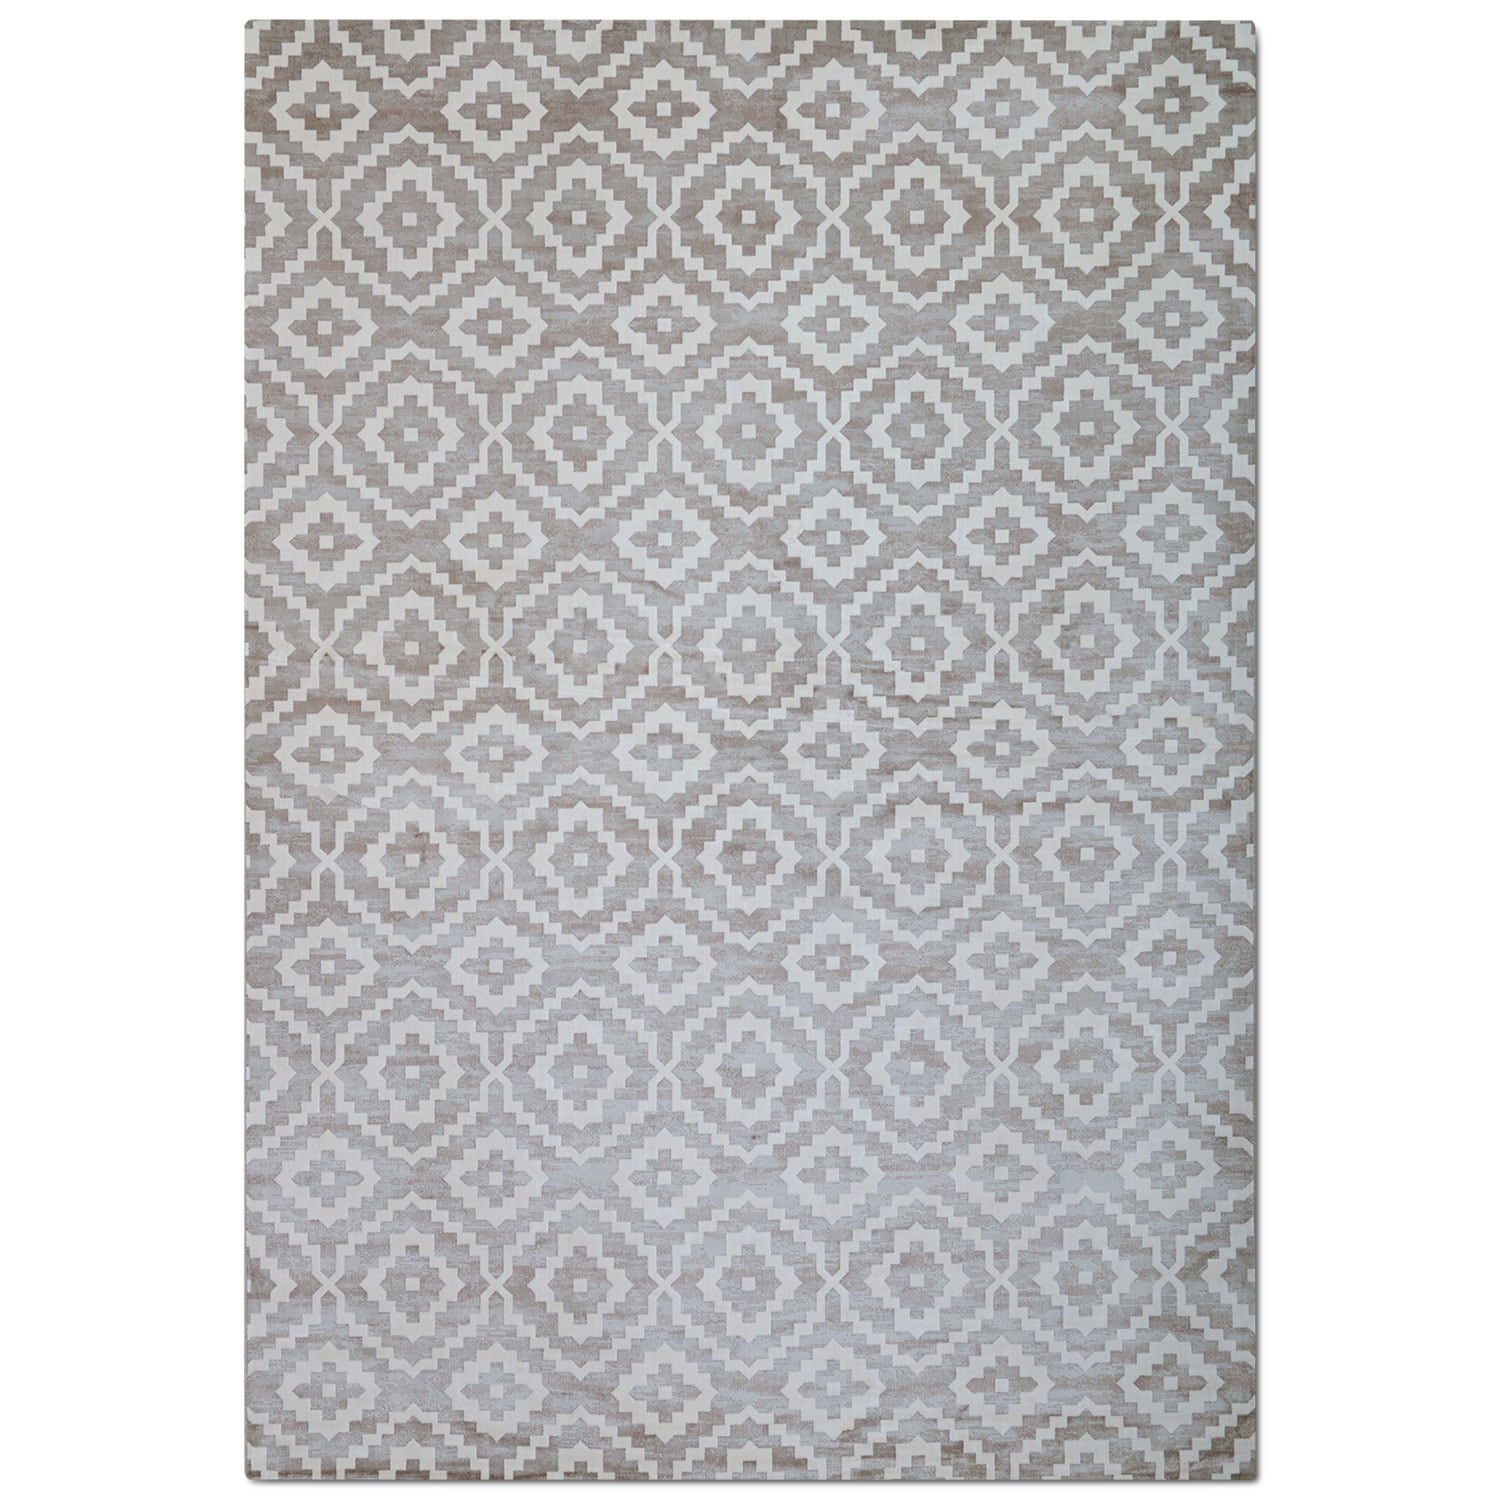 Rugs - Sonoma 5' x 8' Area Rug - Silver